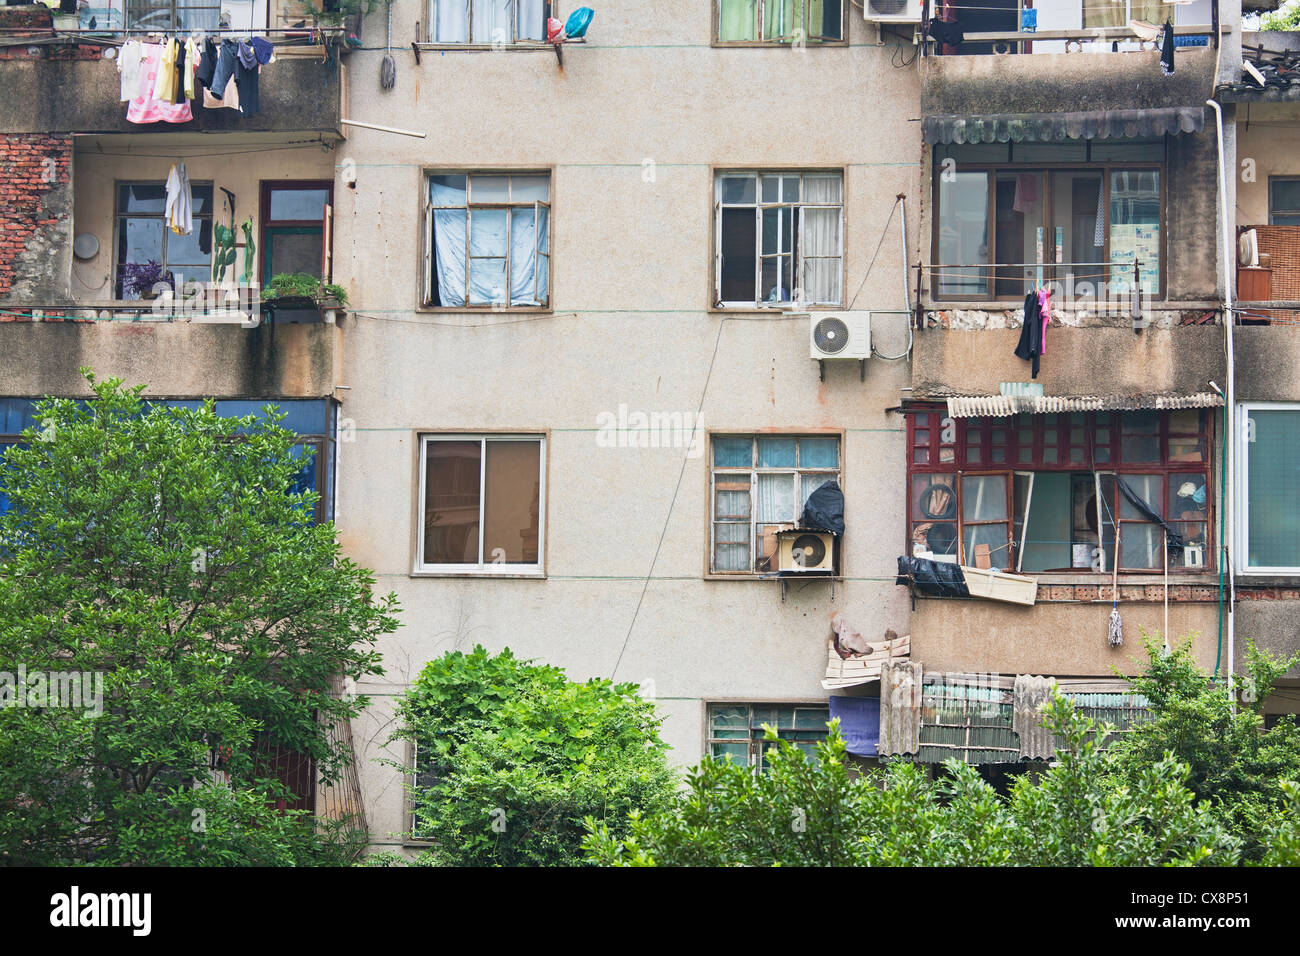 Outside of houses in rural China where many families live in poverty - Stock Image